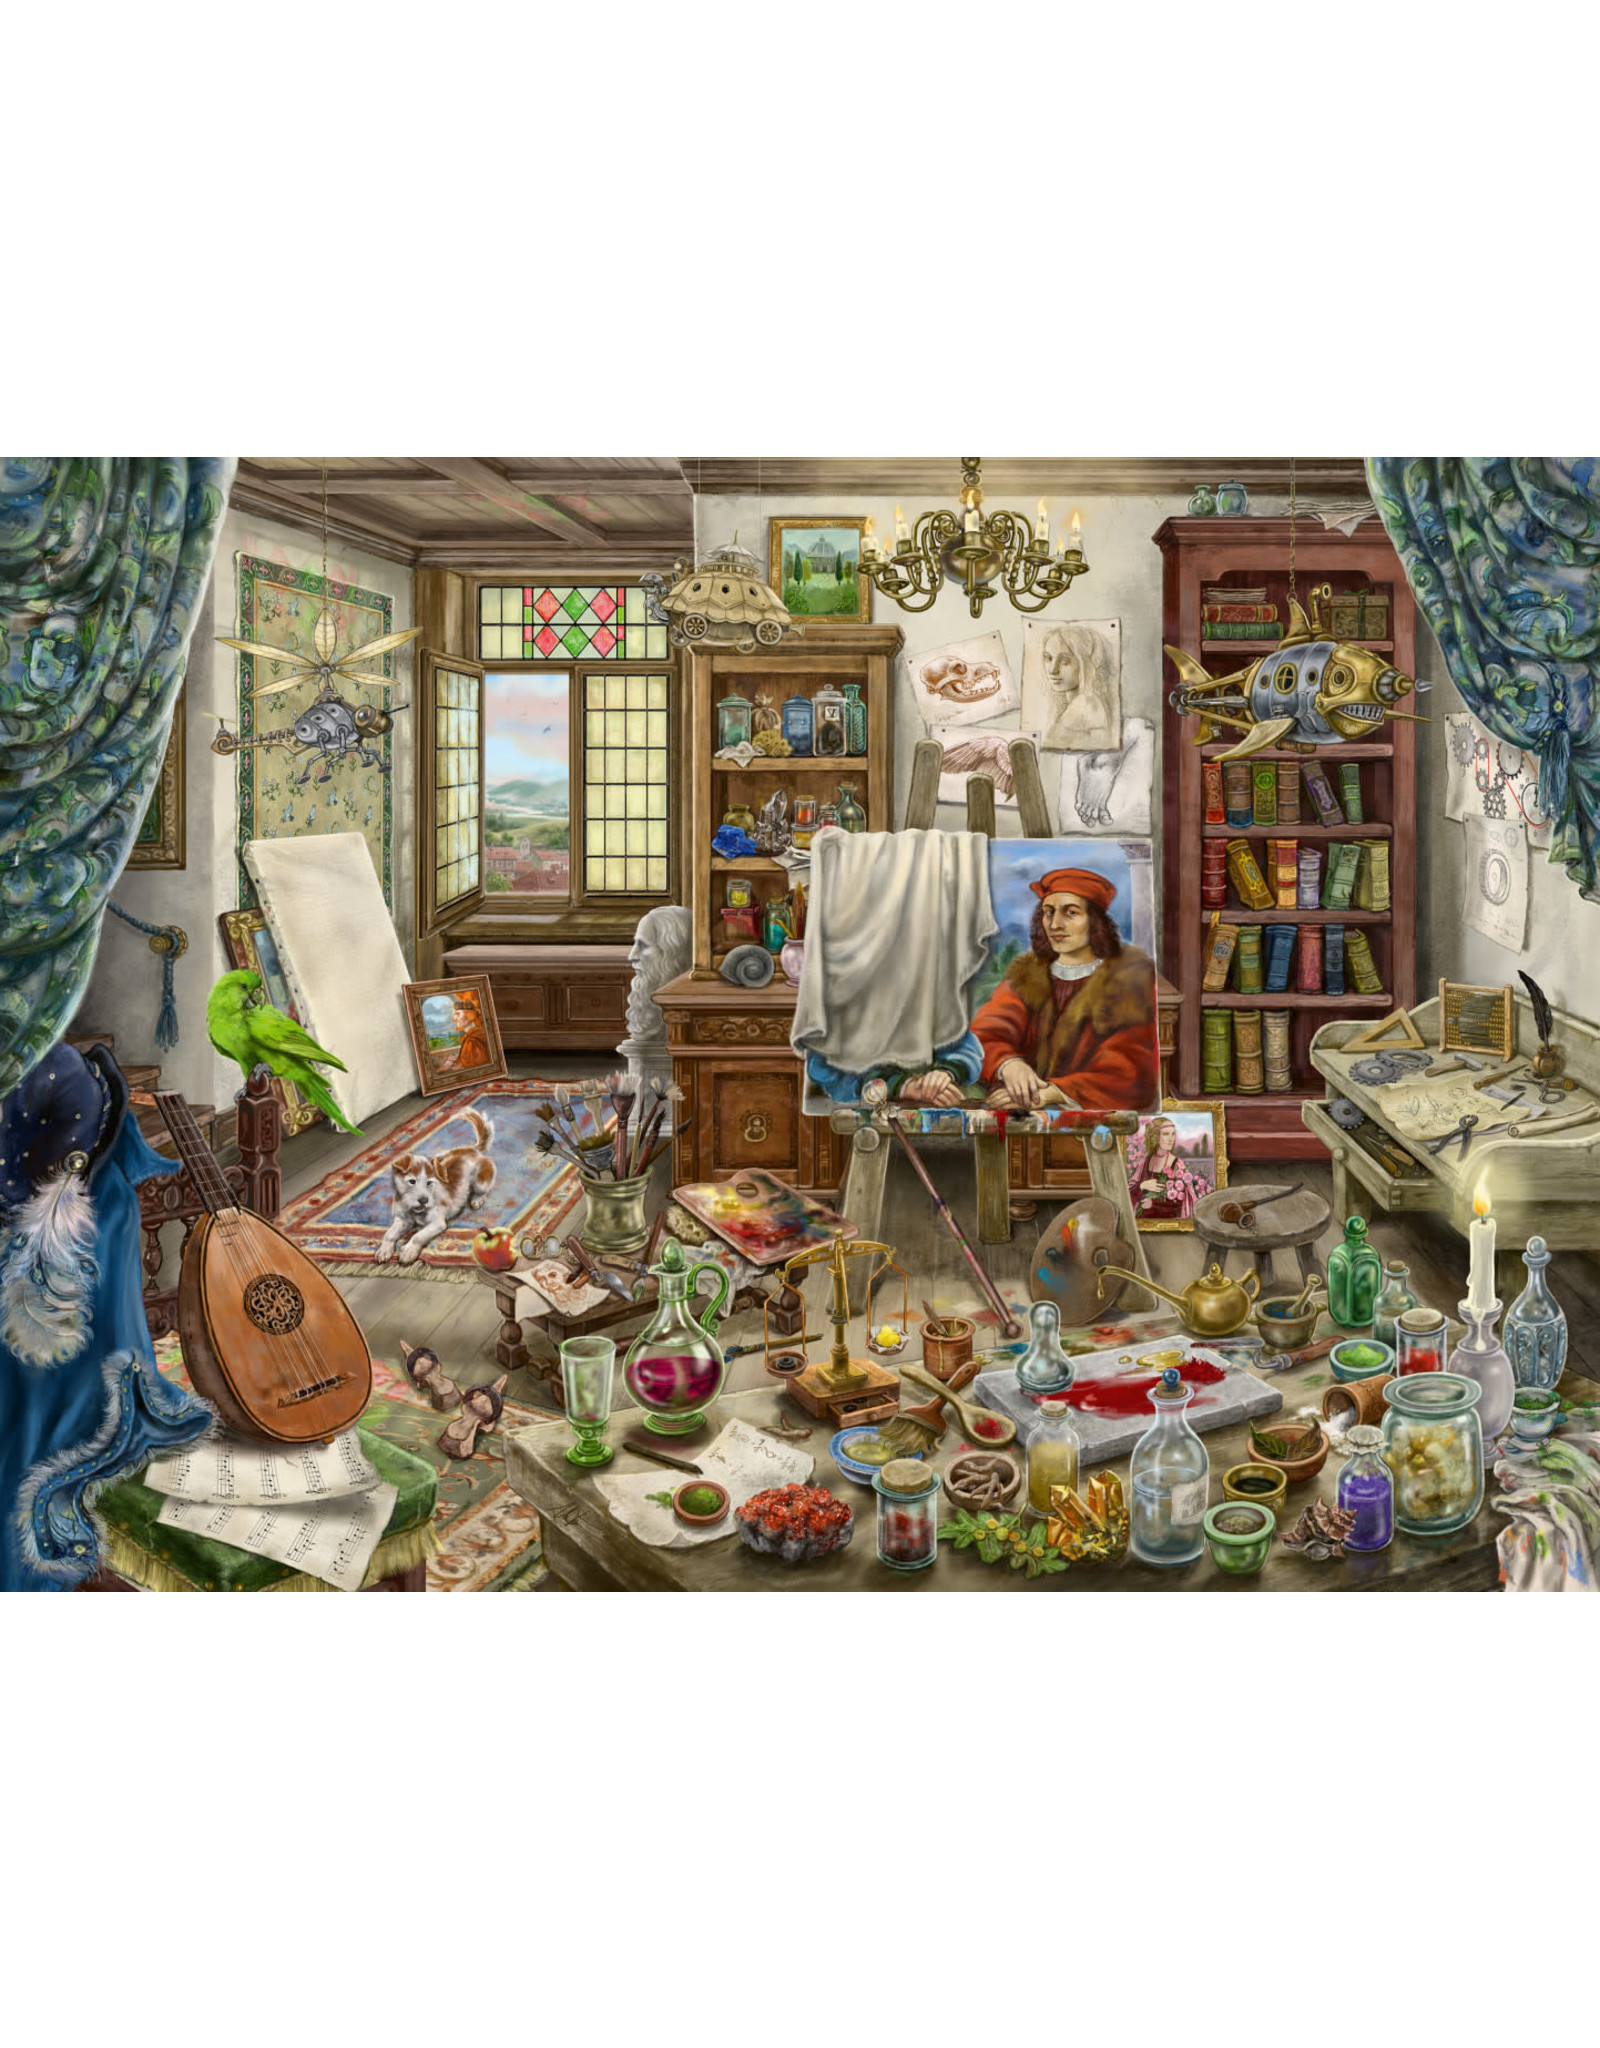 Ravensburger 759 pcs. The Artist's Studio Escape Puzzle